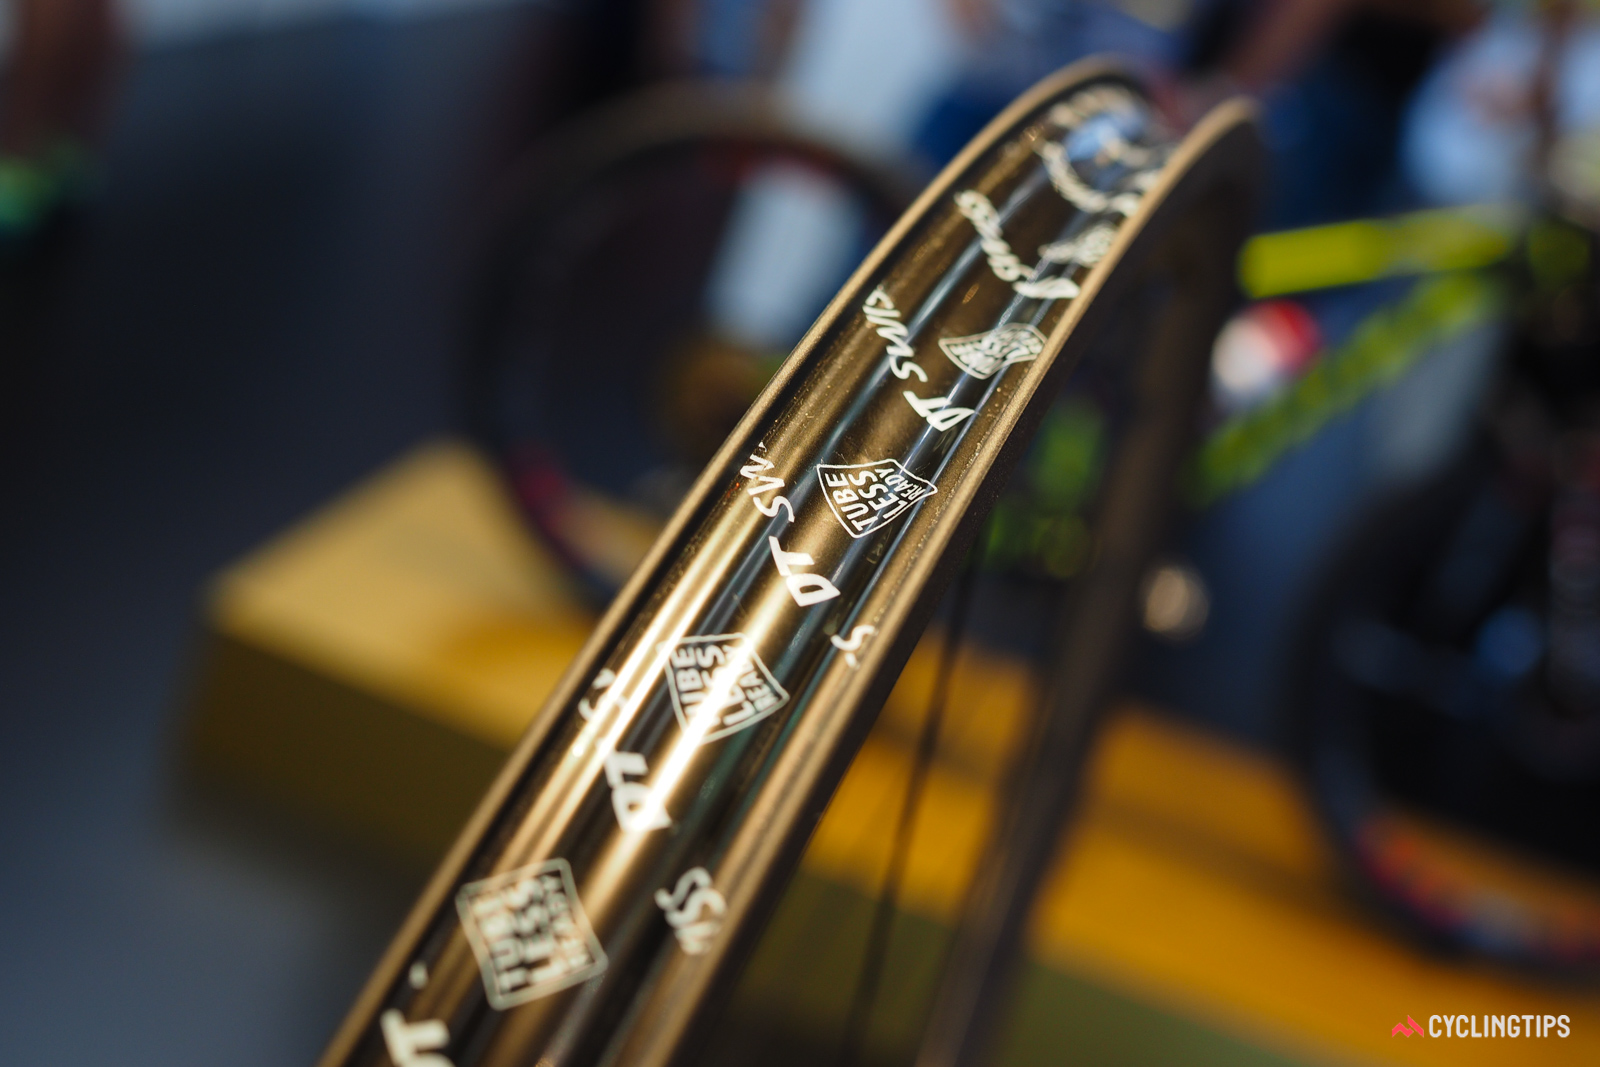 Tubeless compatibility is seemingly coming hand-in-hand with wider rim profiles.